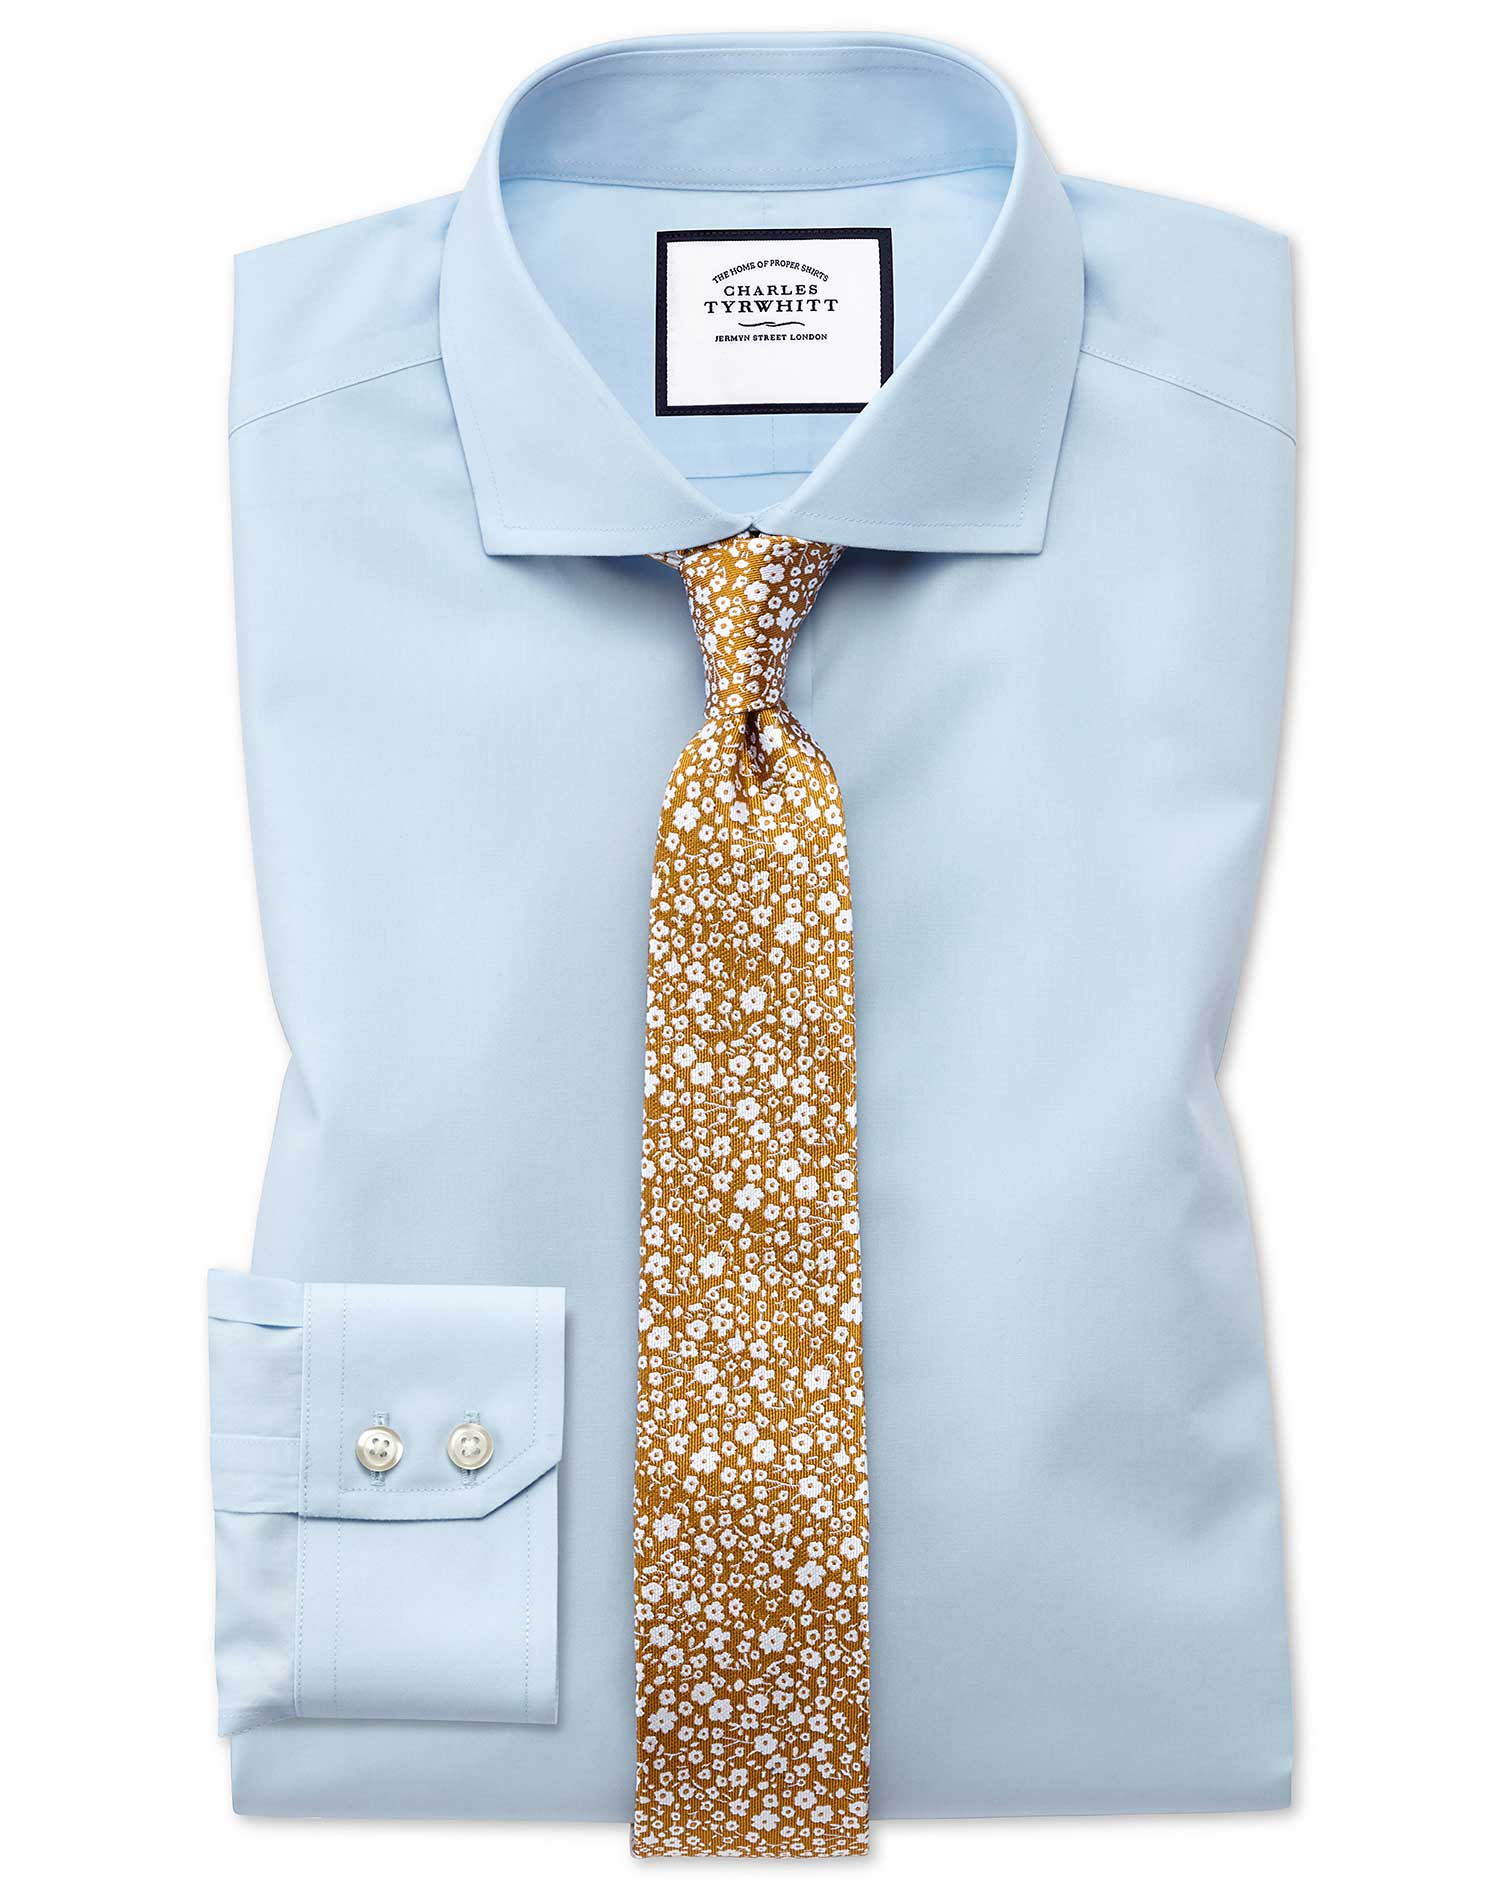 Extra Slim Fit Cutaway Non-Iron Natural Cool Sky Blue Cotton Formal Shirt Single Cuff Size 14.5/33 b